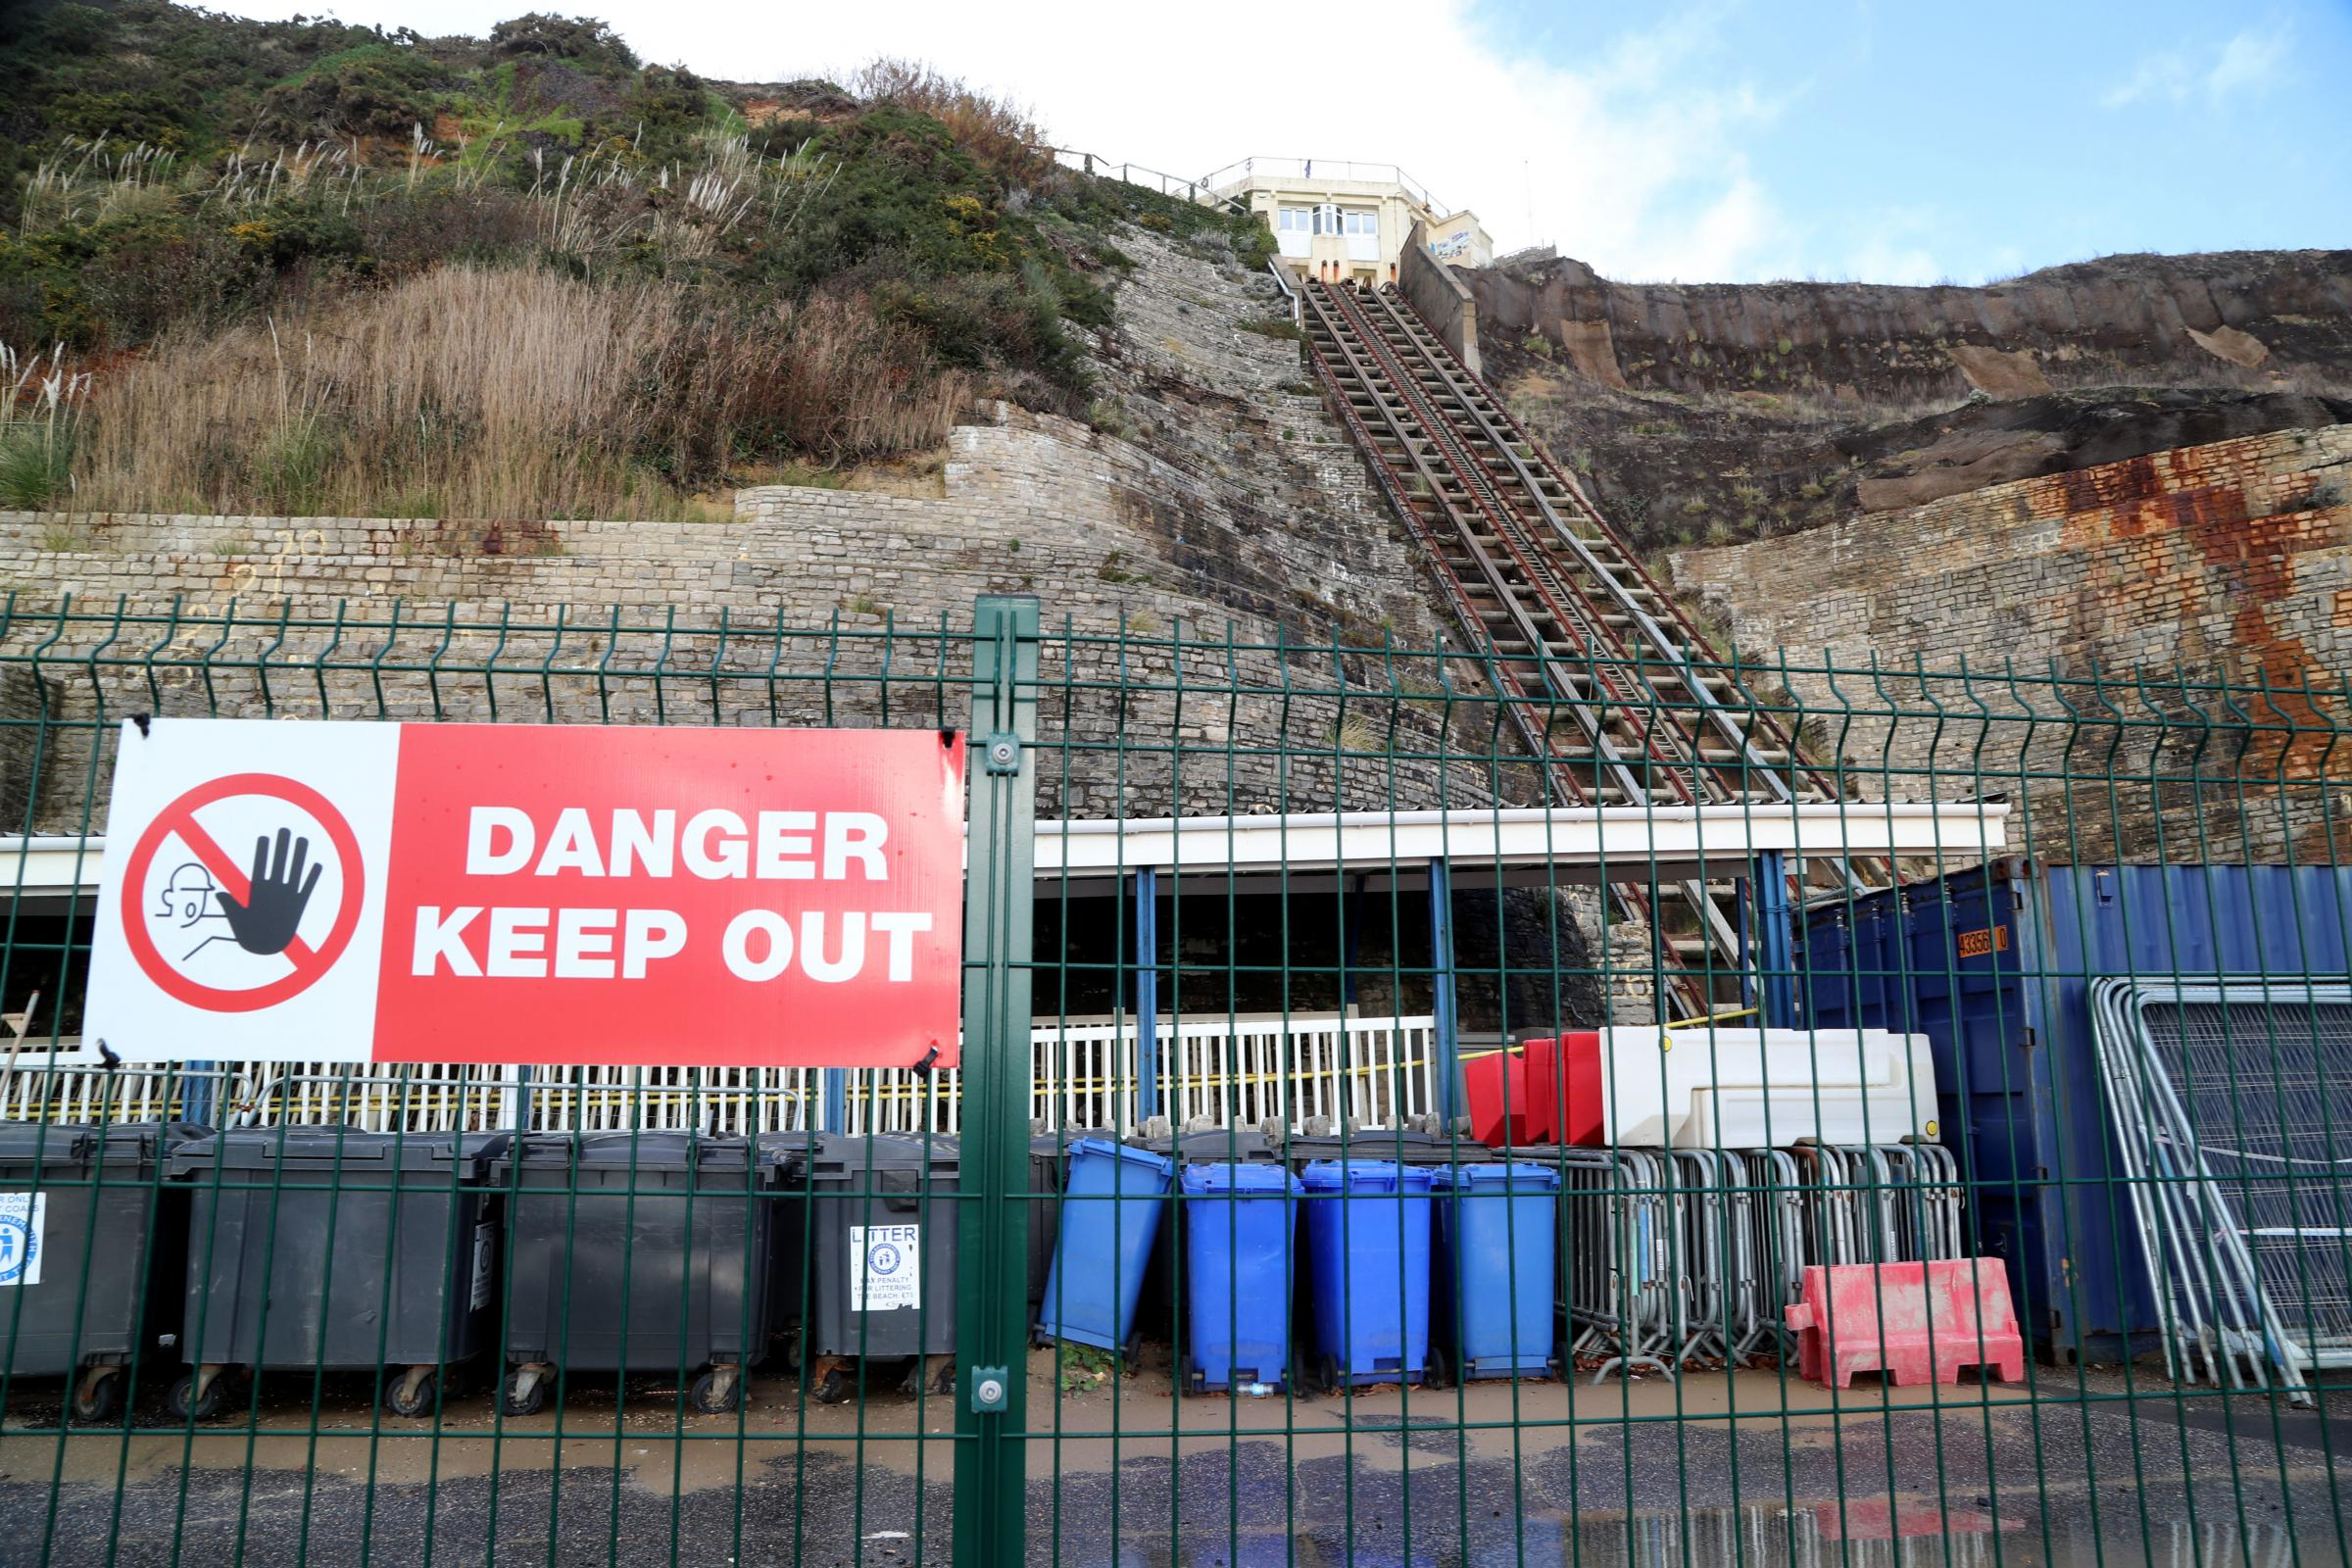 The East Cliff lift site in Bournemouth